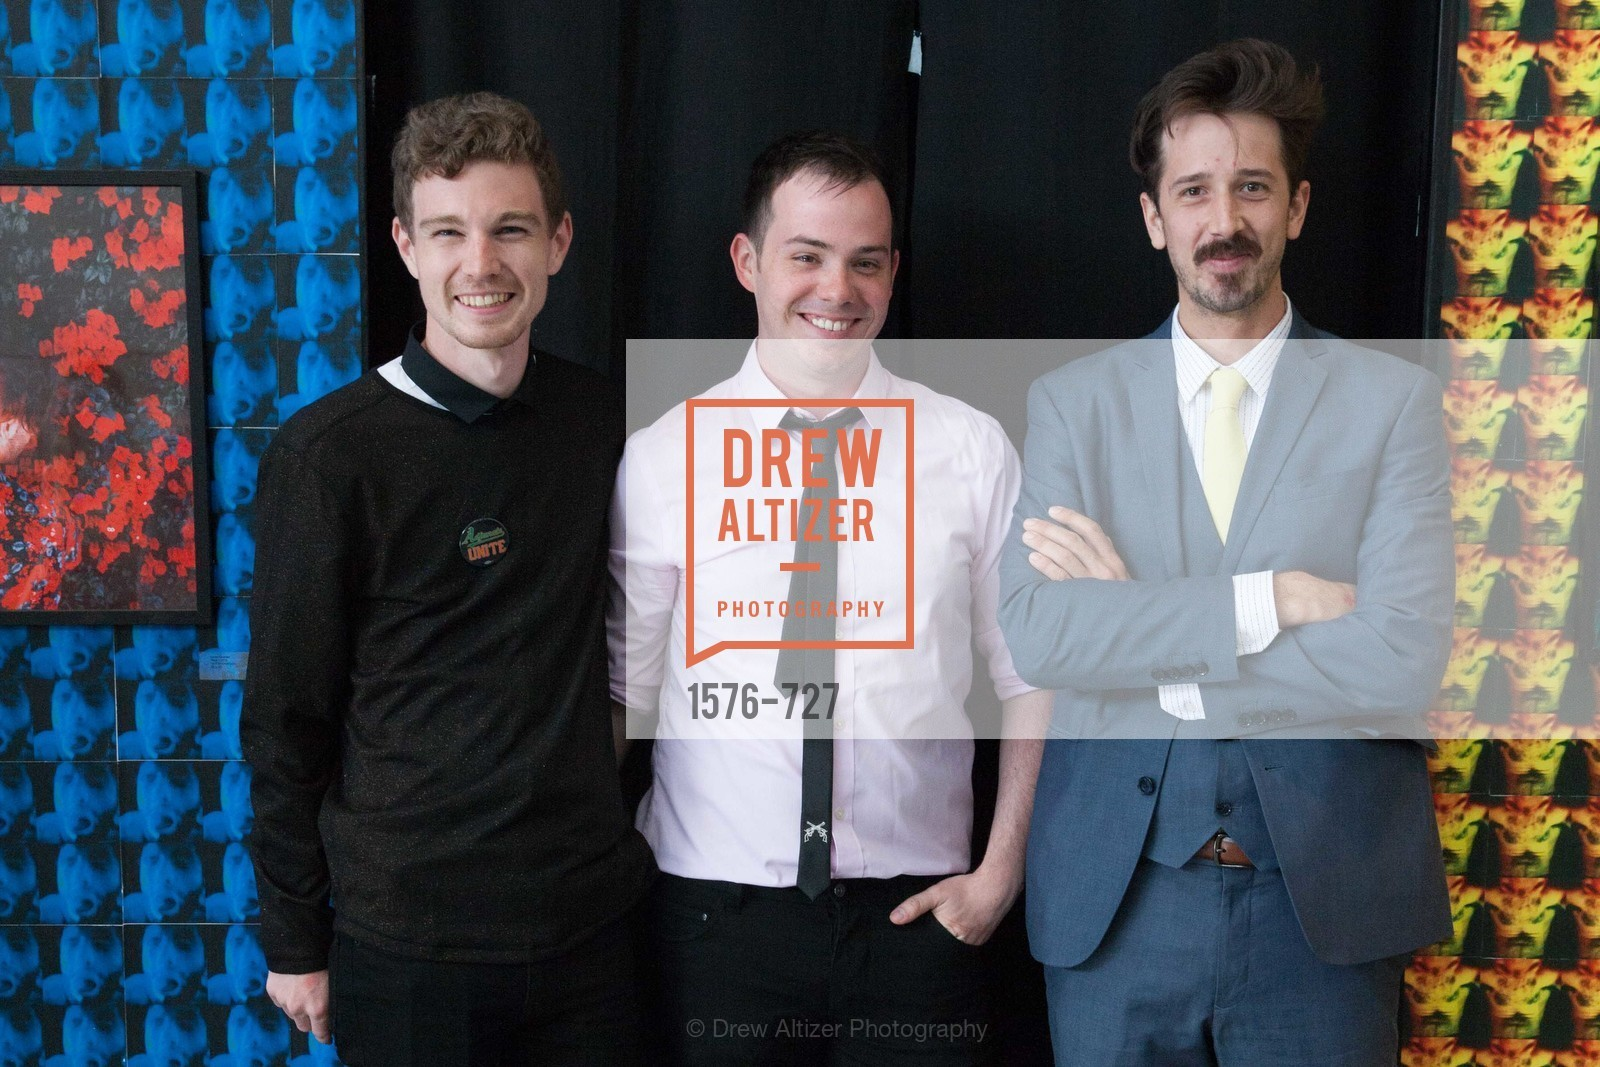 Christopher Squire, Scott Welsh, Owen Laurion, SAN FRANCISCO ART INSTITUTE Gala Honoring Art Visionary and Advocate ROSELYNE CHROMAN SWIG, US, May 13th, 2015,Drew Altizer, Drew Altizer Photography, full-service agency, private events, San Francisco photographer, photographer california